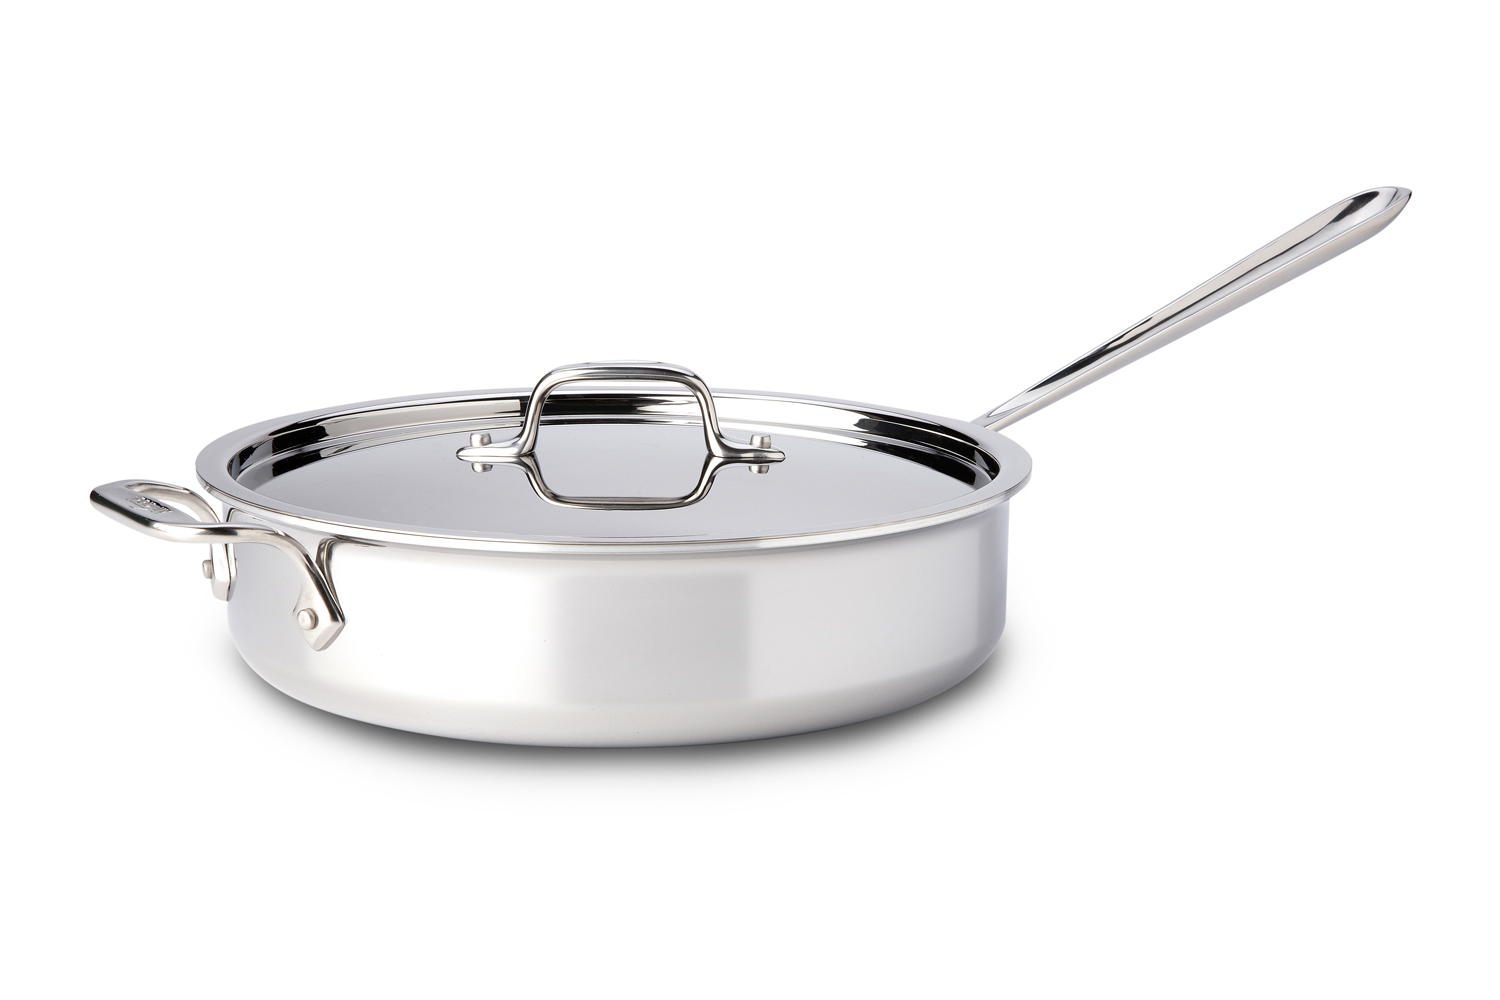 All-Clad d3 Tri-Ply Stainless Steel 4 qt. Saute Pan w/Lid